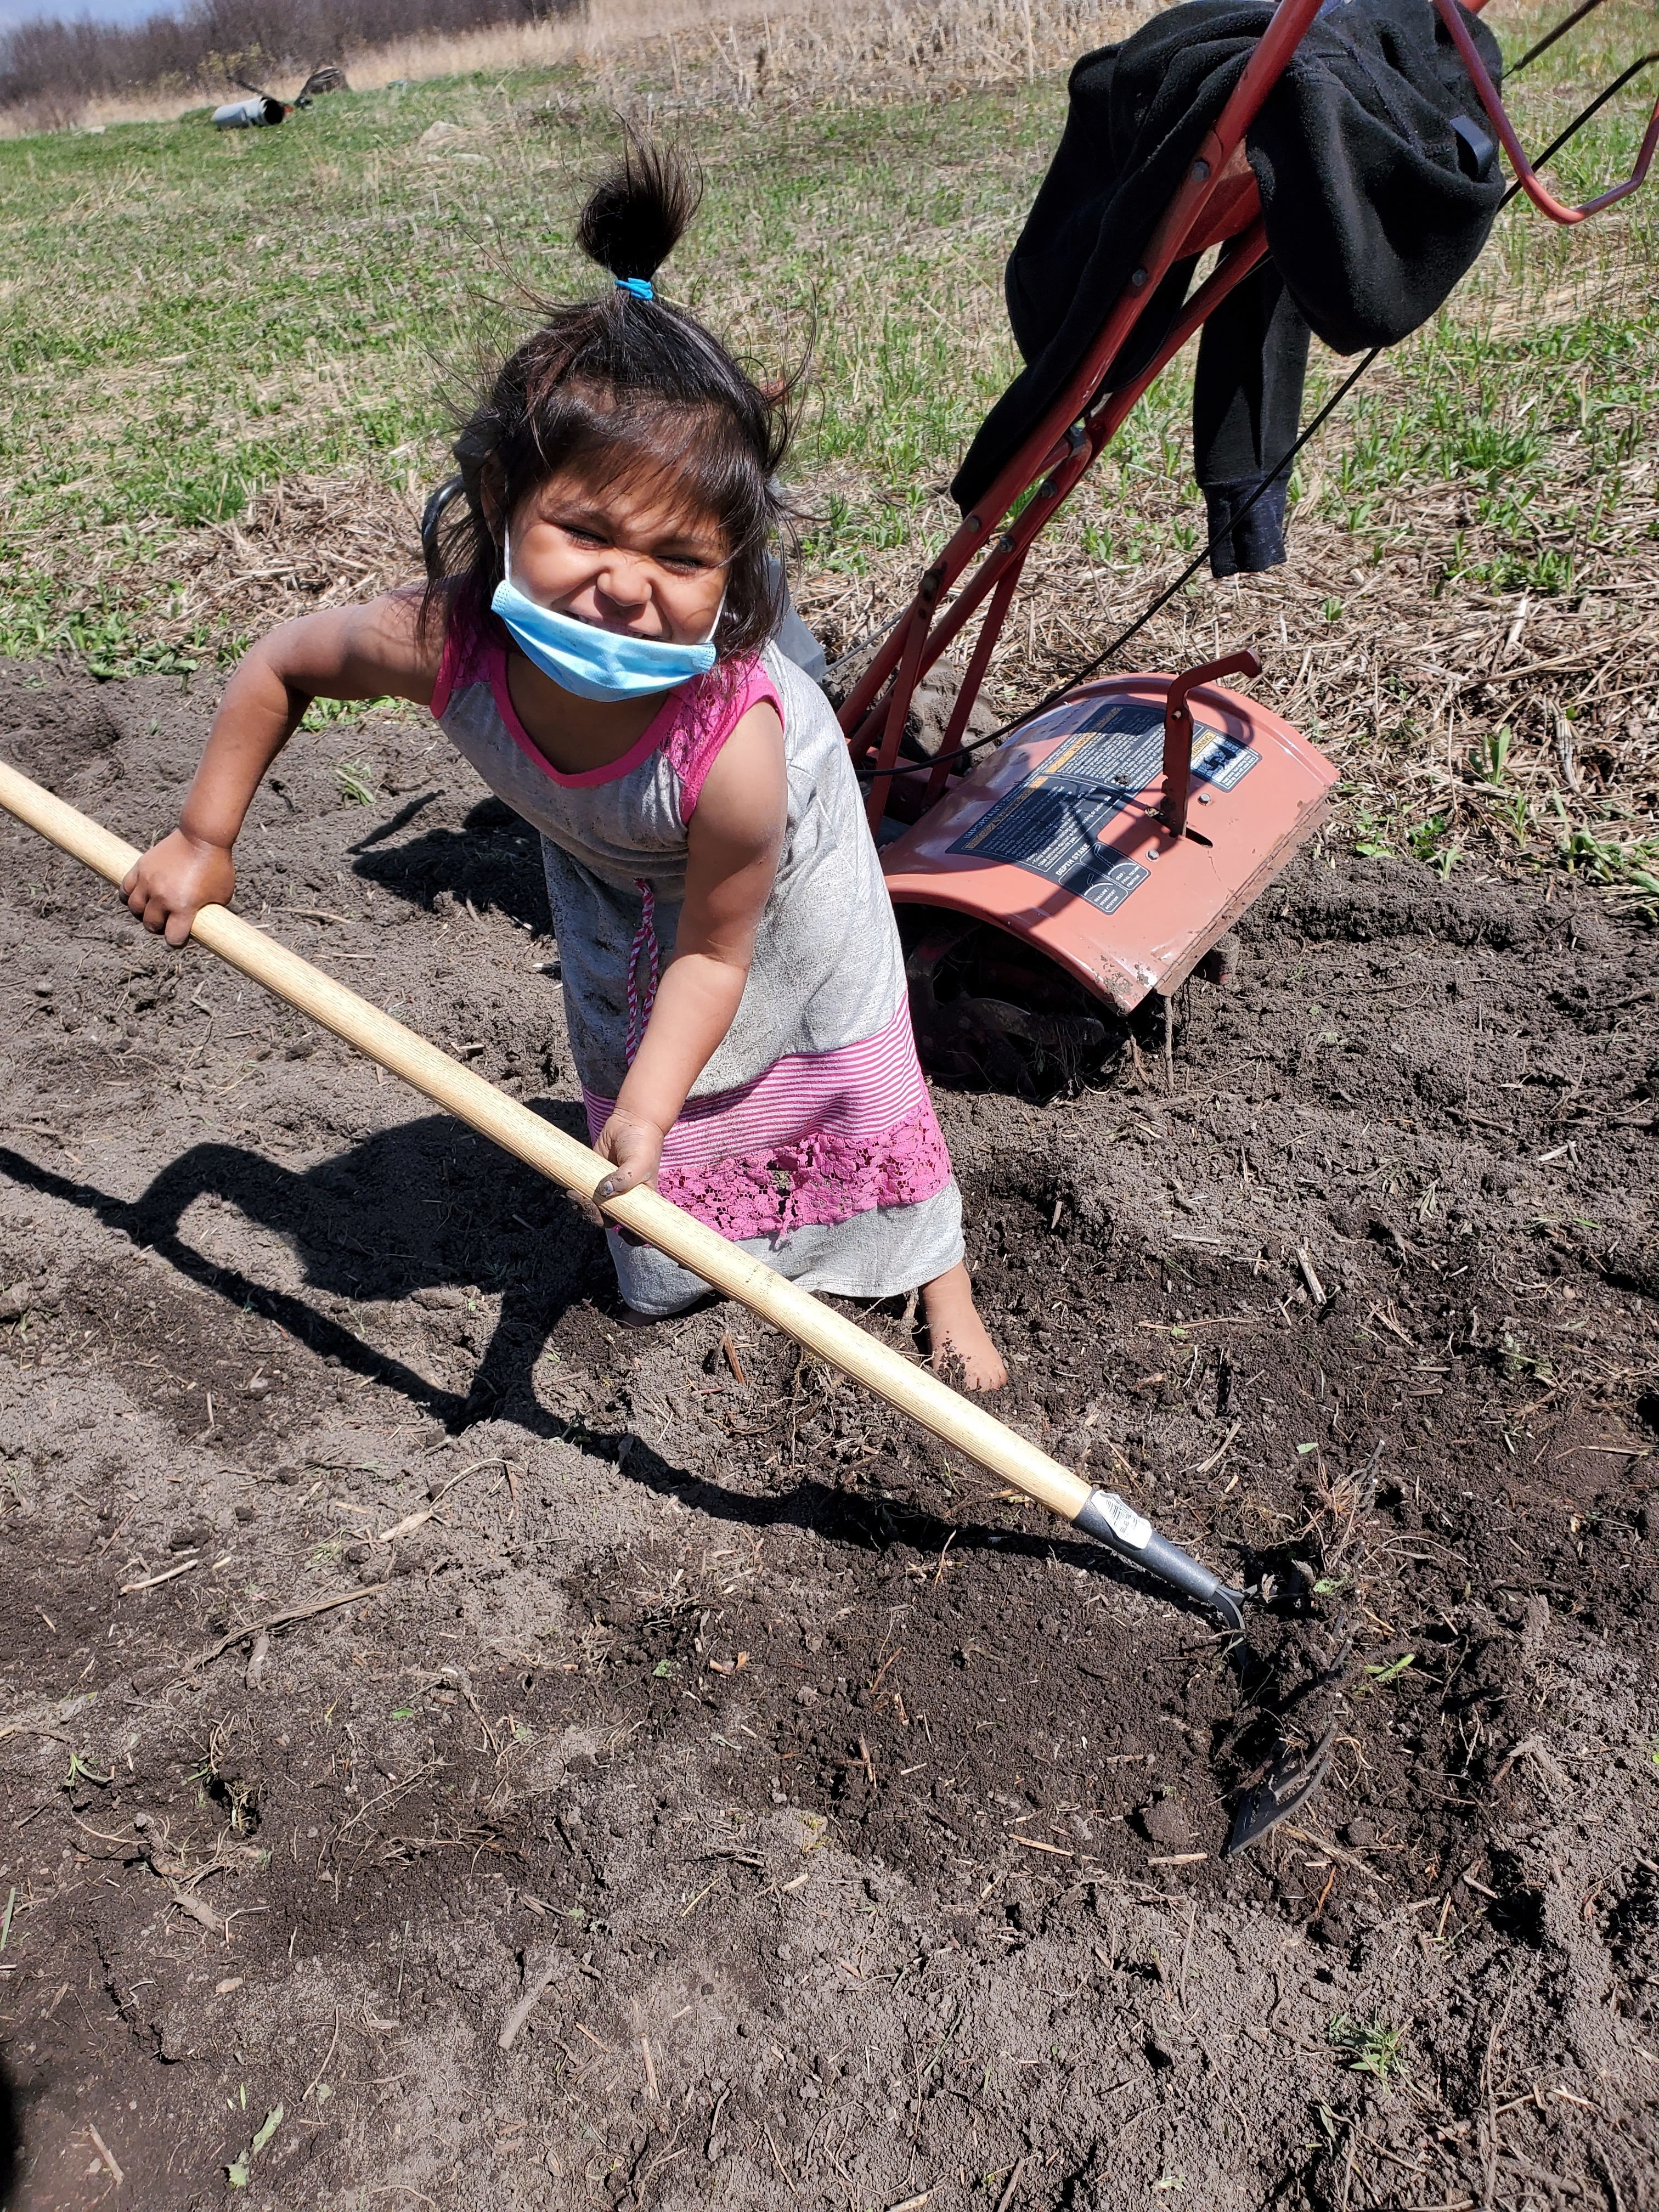 Jaclyn Hall's three-year-old daughter Wathahine helps prepare the family's garden. (Submitted by Jaclyn Hall)